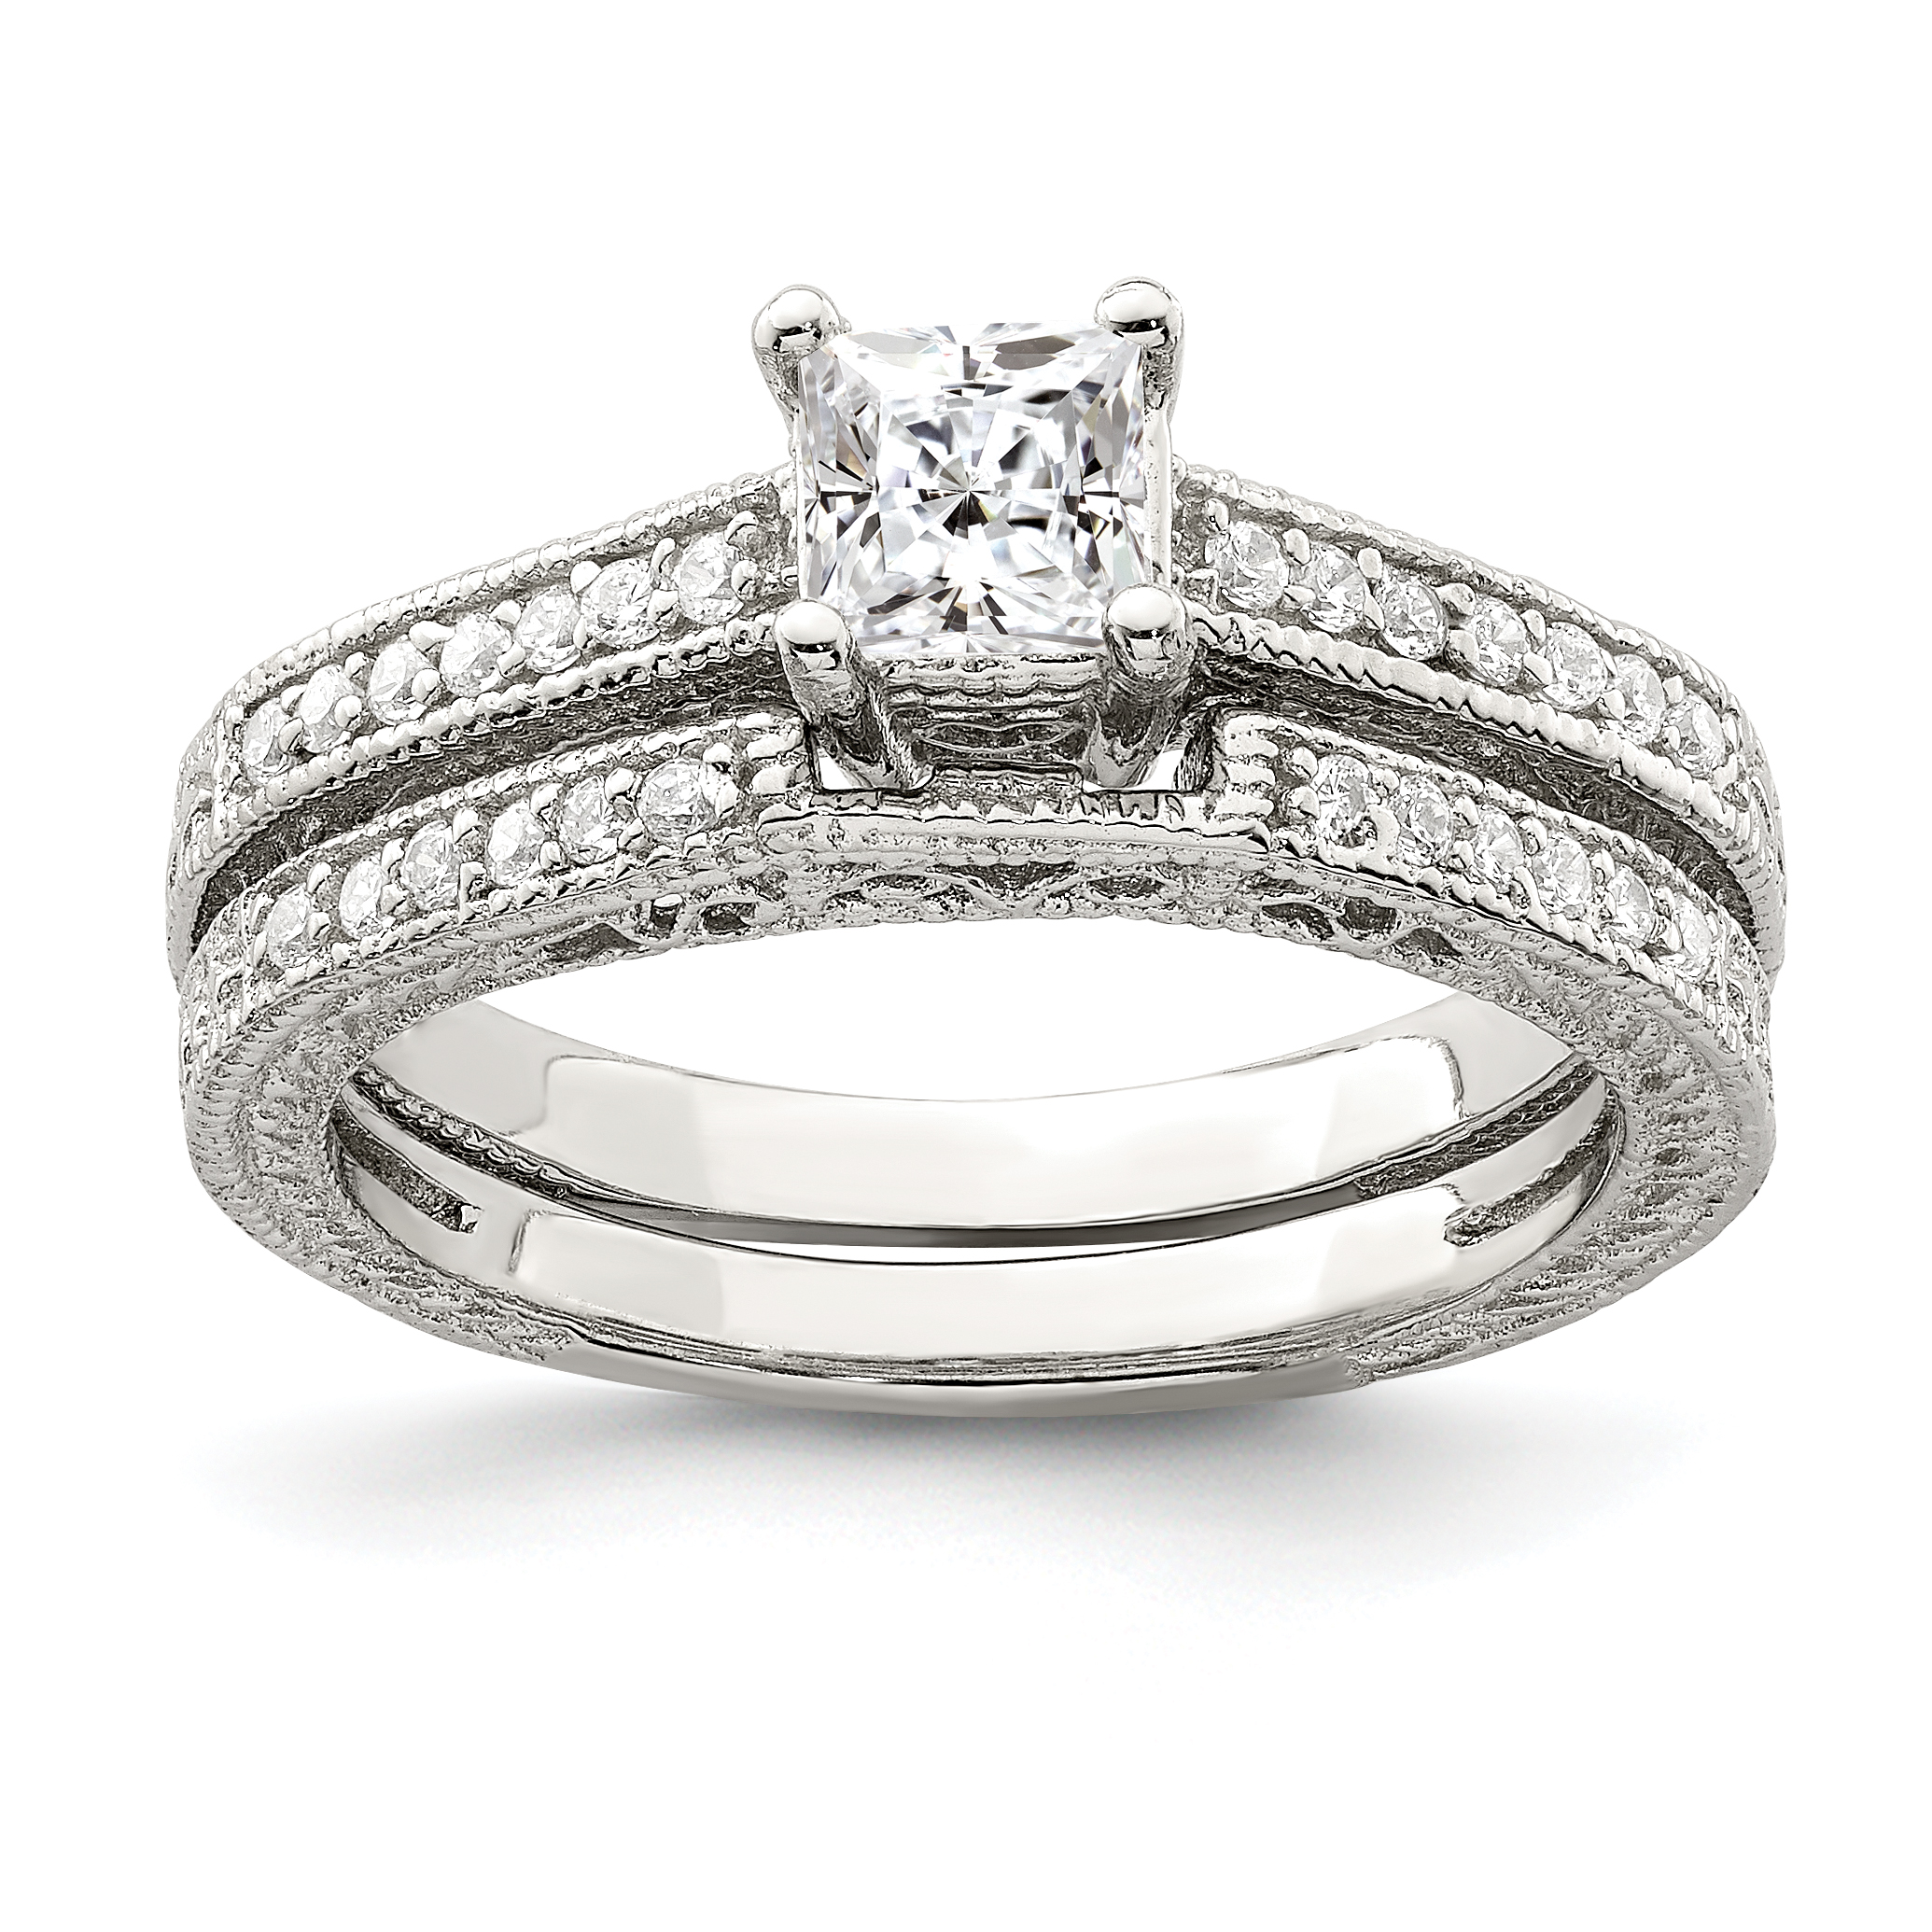 Wedding Gifts At Walmart: ICE CARATS 925 Sterling Silver 2 Piece Cubic Zirconia Cz